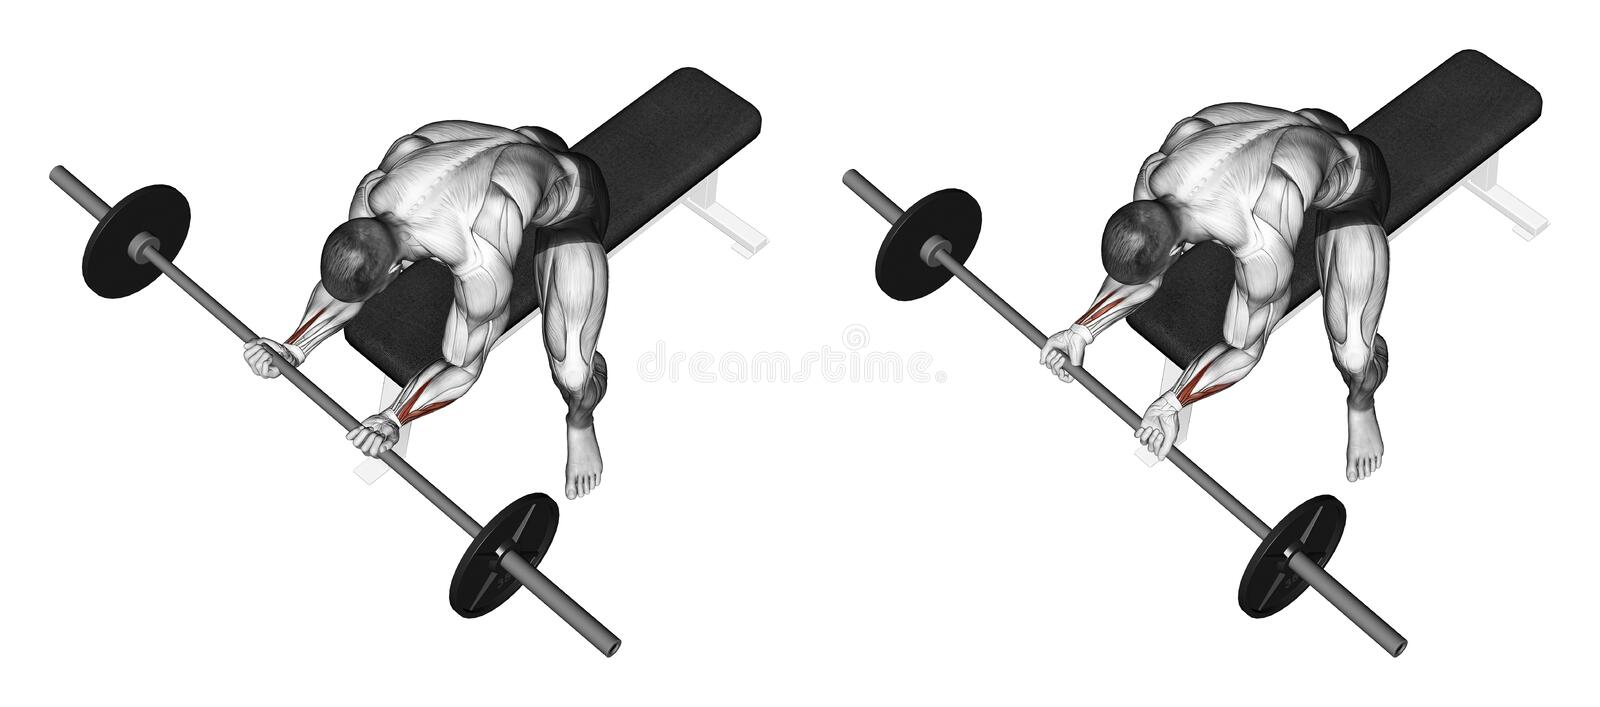 Exercising. Flexion of the wrist with a barbell un vector illustration